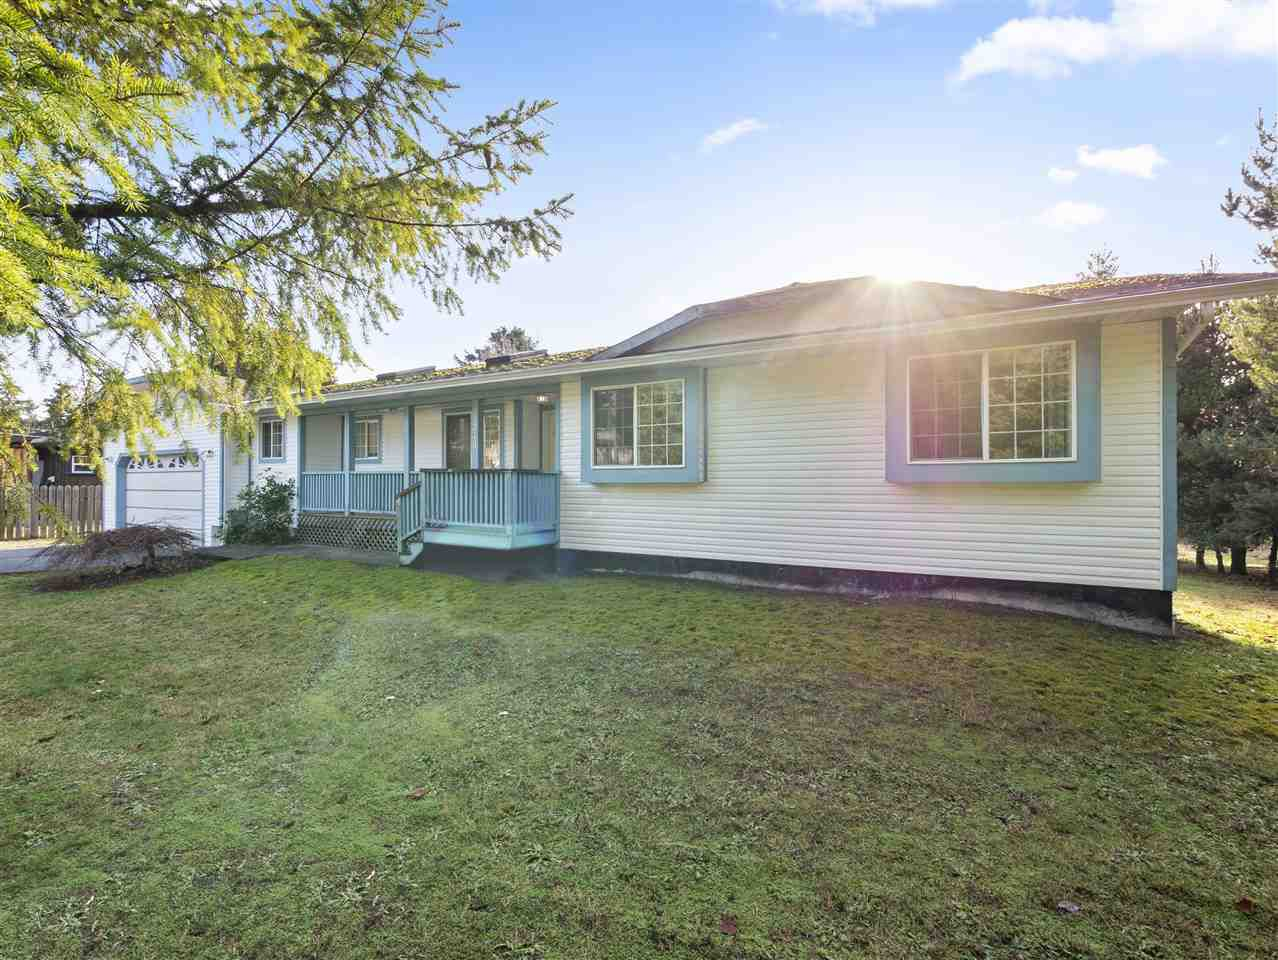 Main Photo: 1271 FITCHETT Road in Gibsons: Gibsons & Area House for sale (Sunshine Coast)  : MLS®# R2334465